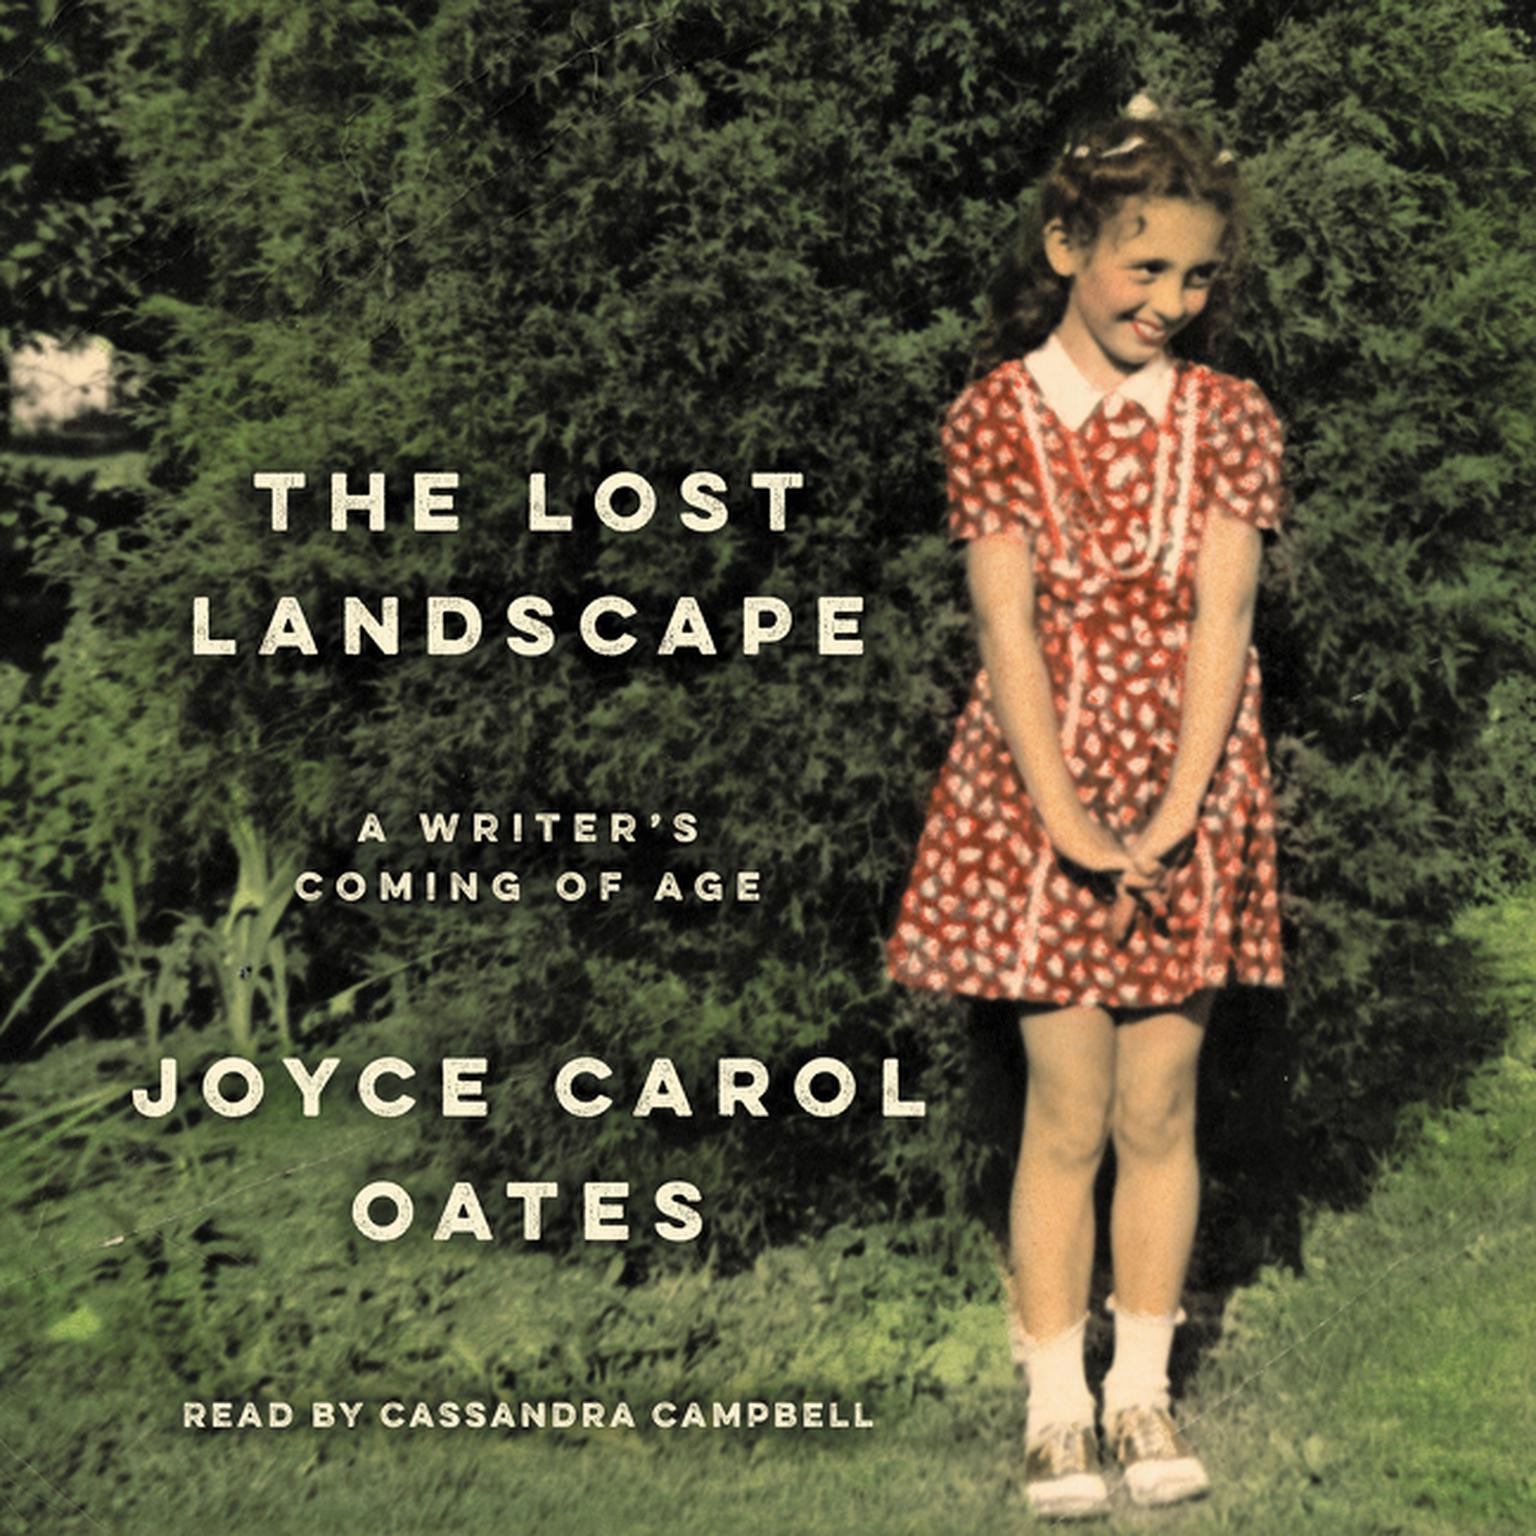 hear the lost landscape audiobook by joyce carol oates for just  extended audio sample the lost landscape a writers coming of age audiobook by joyce carol oates